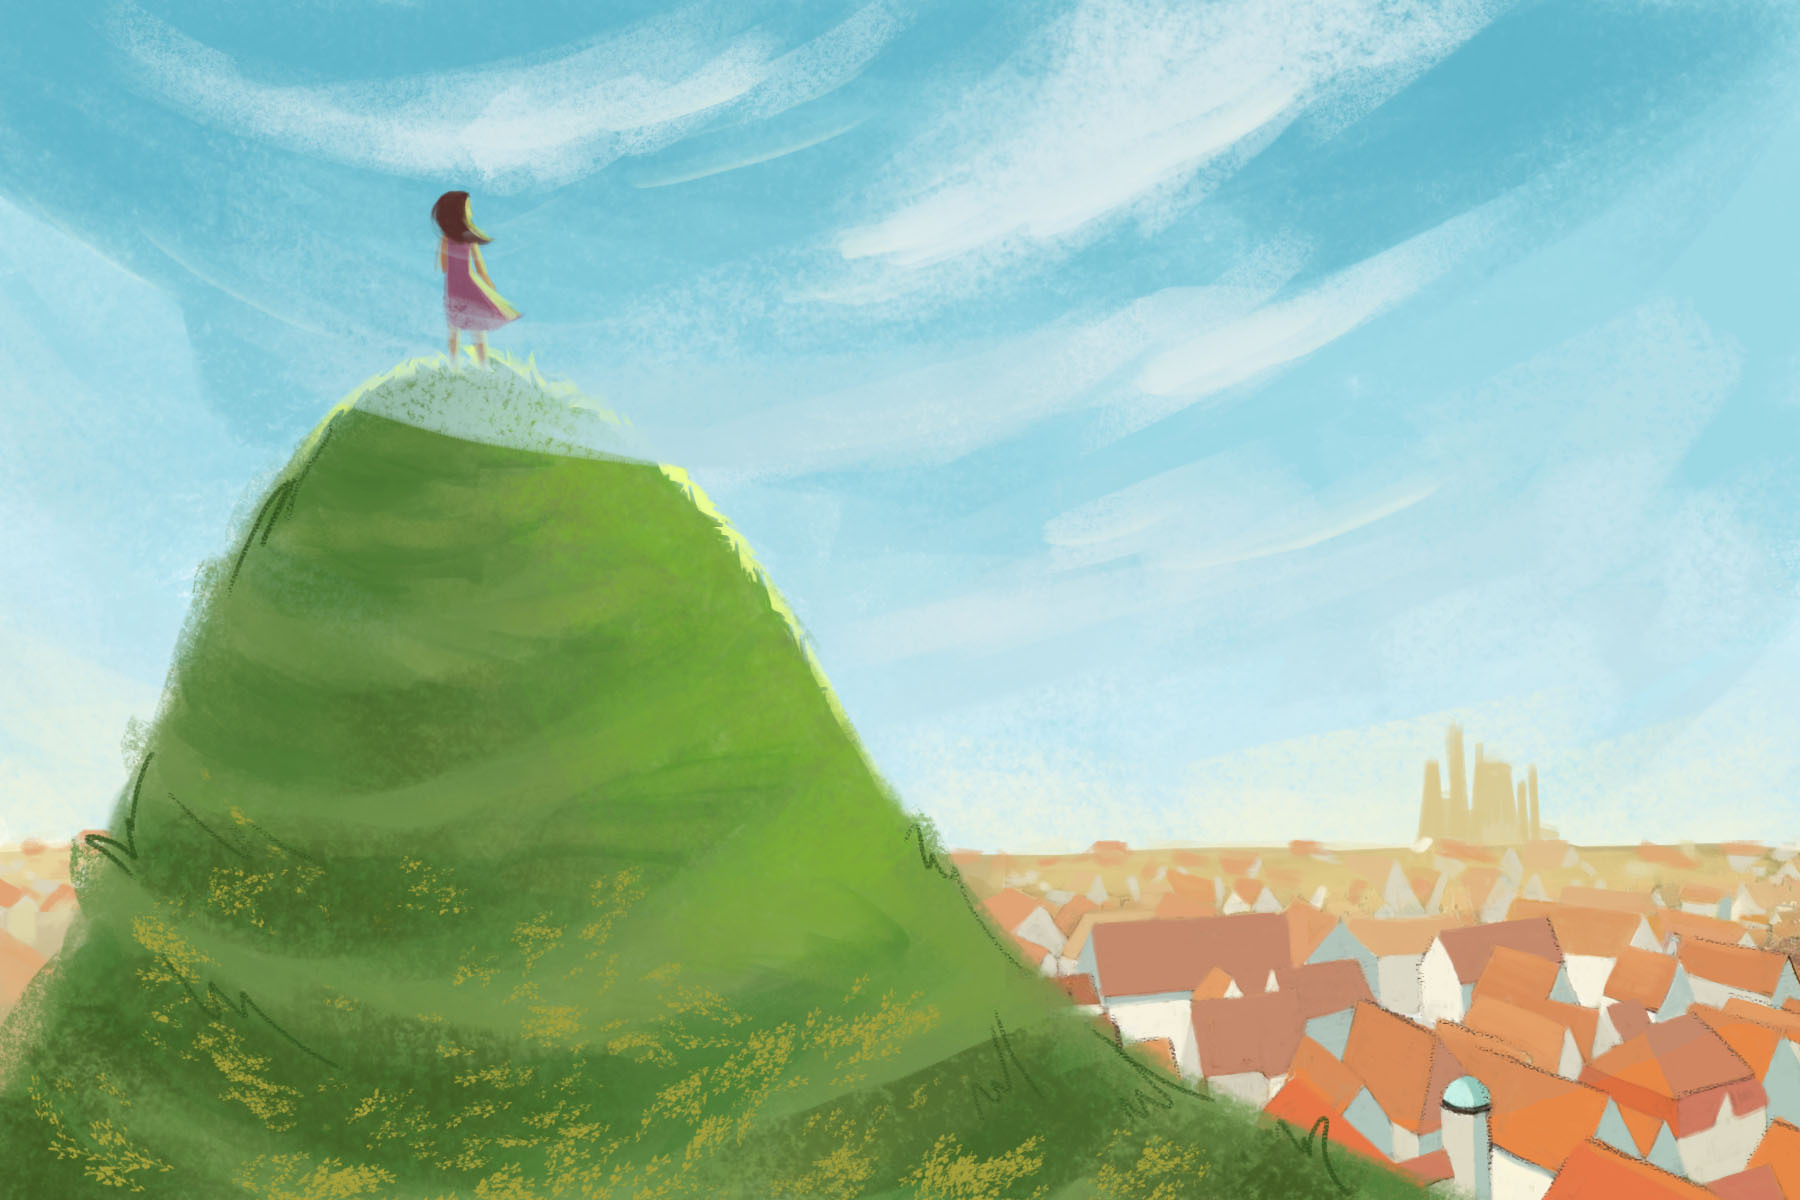 Illustration by Veronica Chen of a person on a hill during a walk